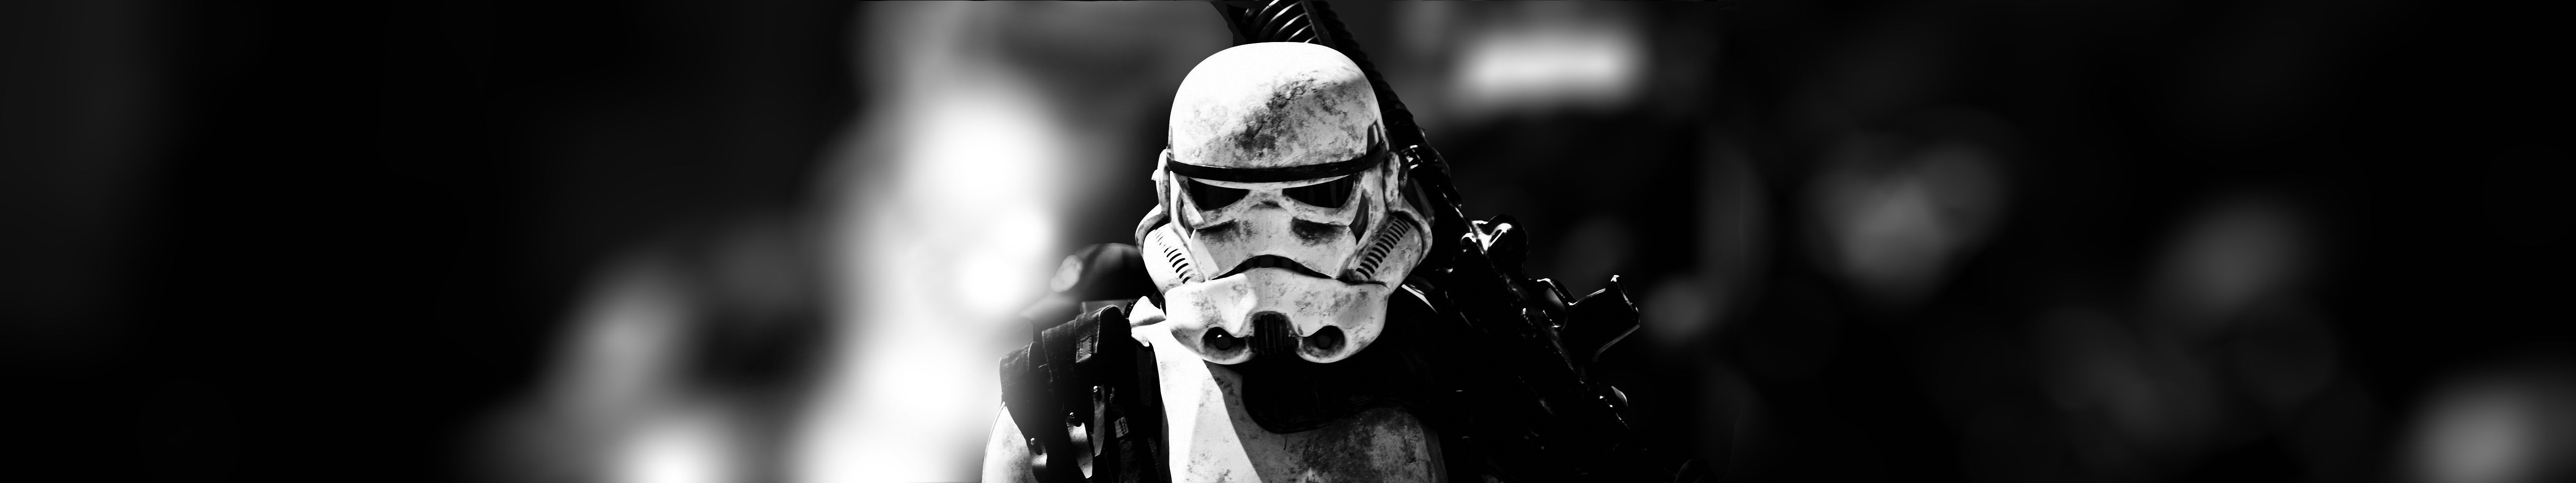 Created My Own Triple Monitor Stormtrooper Wallpaper To Match Black And White Desk Setup 5760x1080